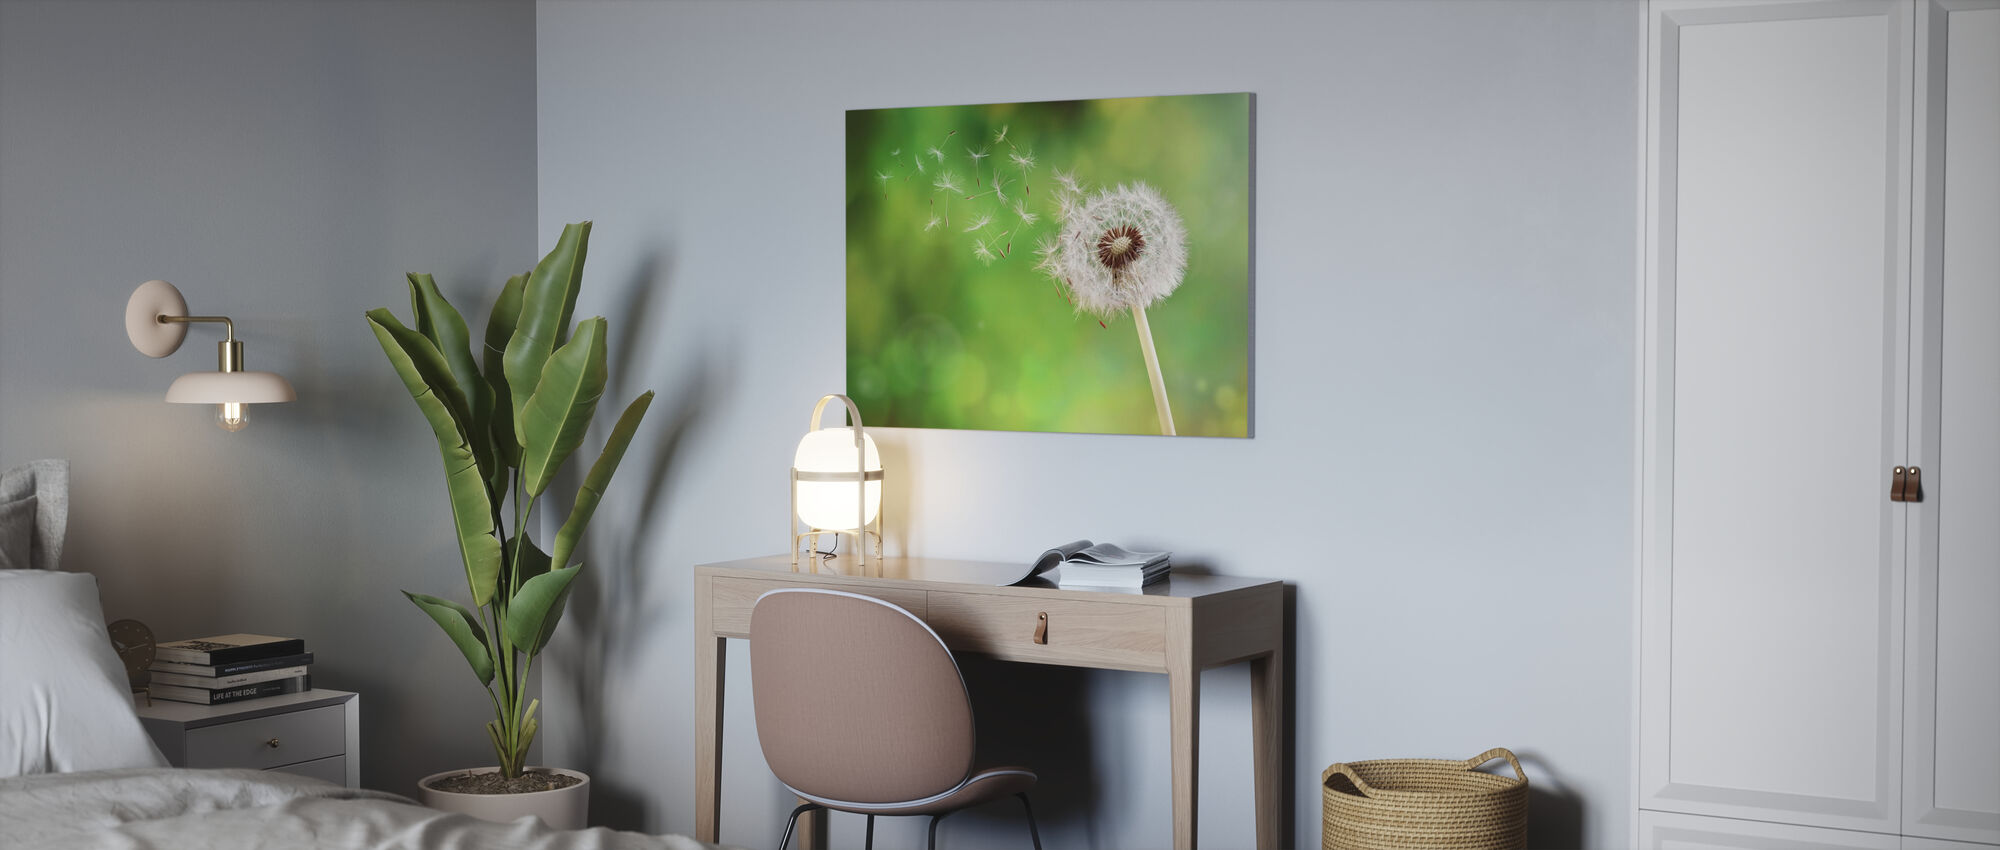 Dandelion Dispersing Seed - Canvas print - Office